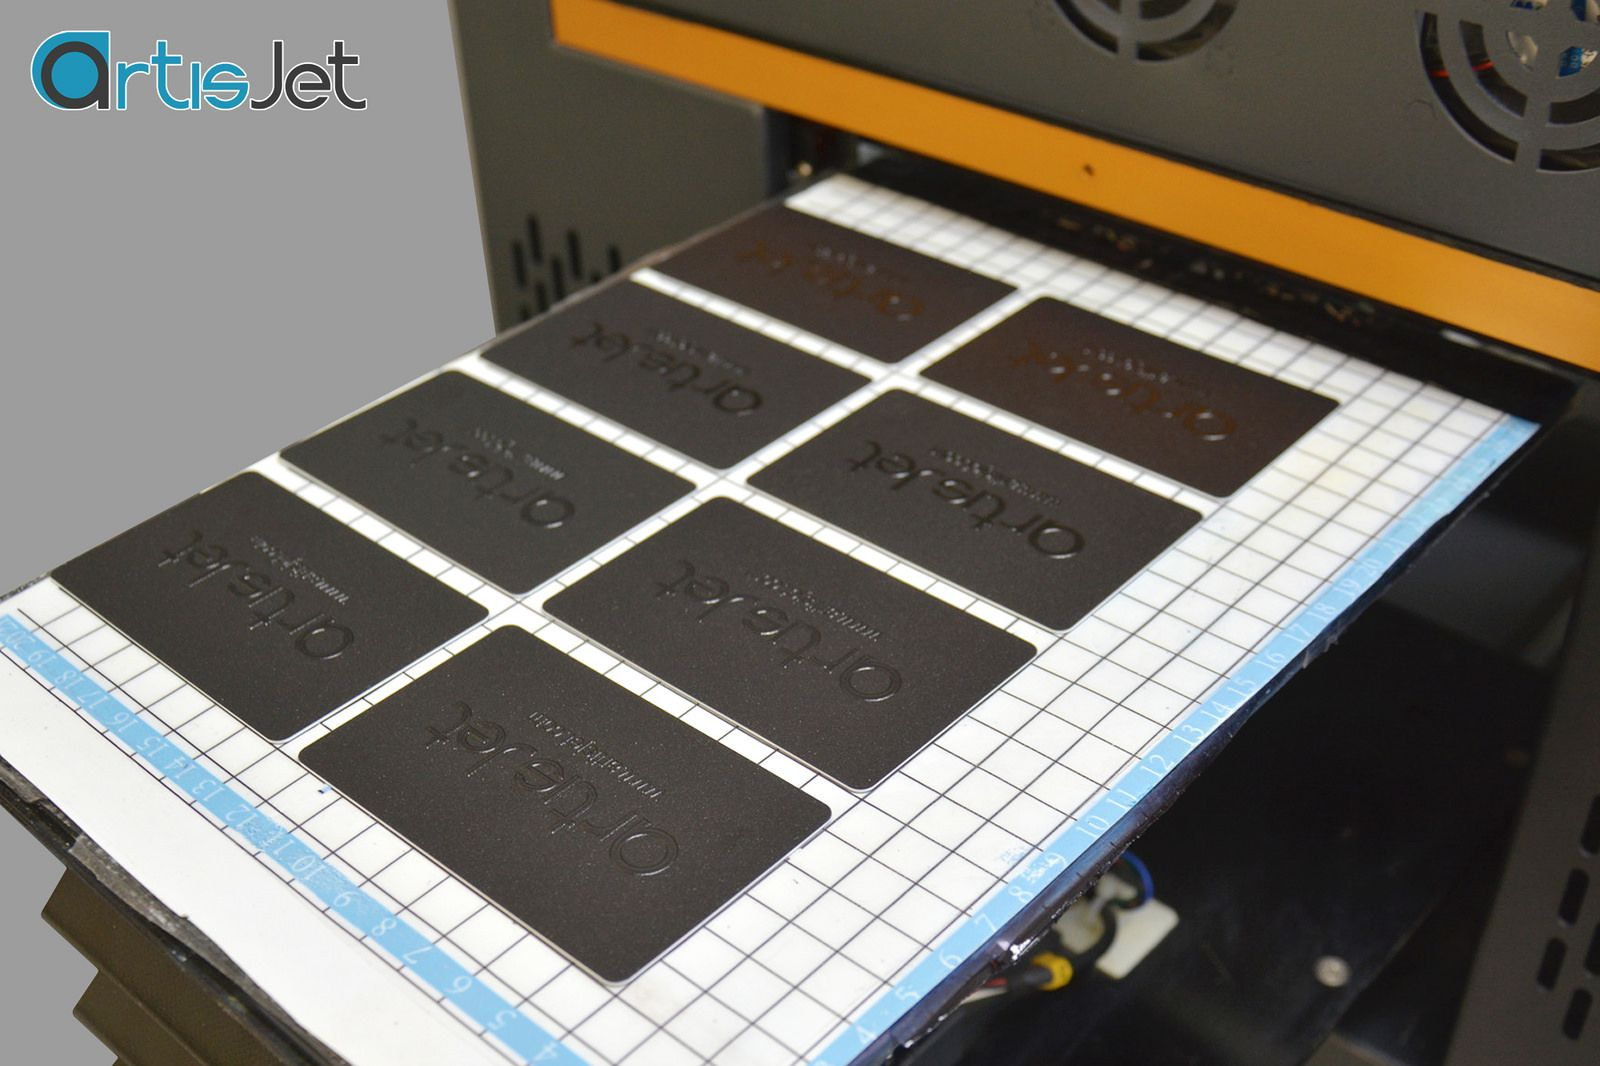 Varnish Printing With Artis 2100u Printer With Images Prints